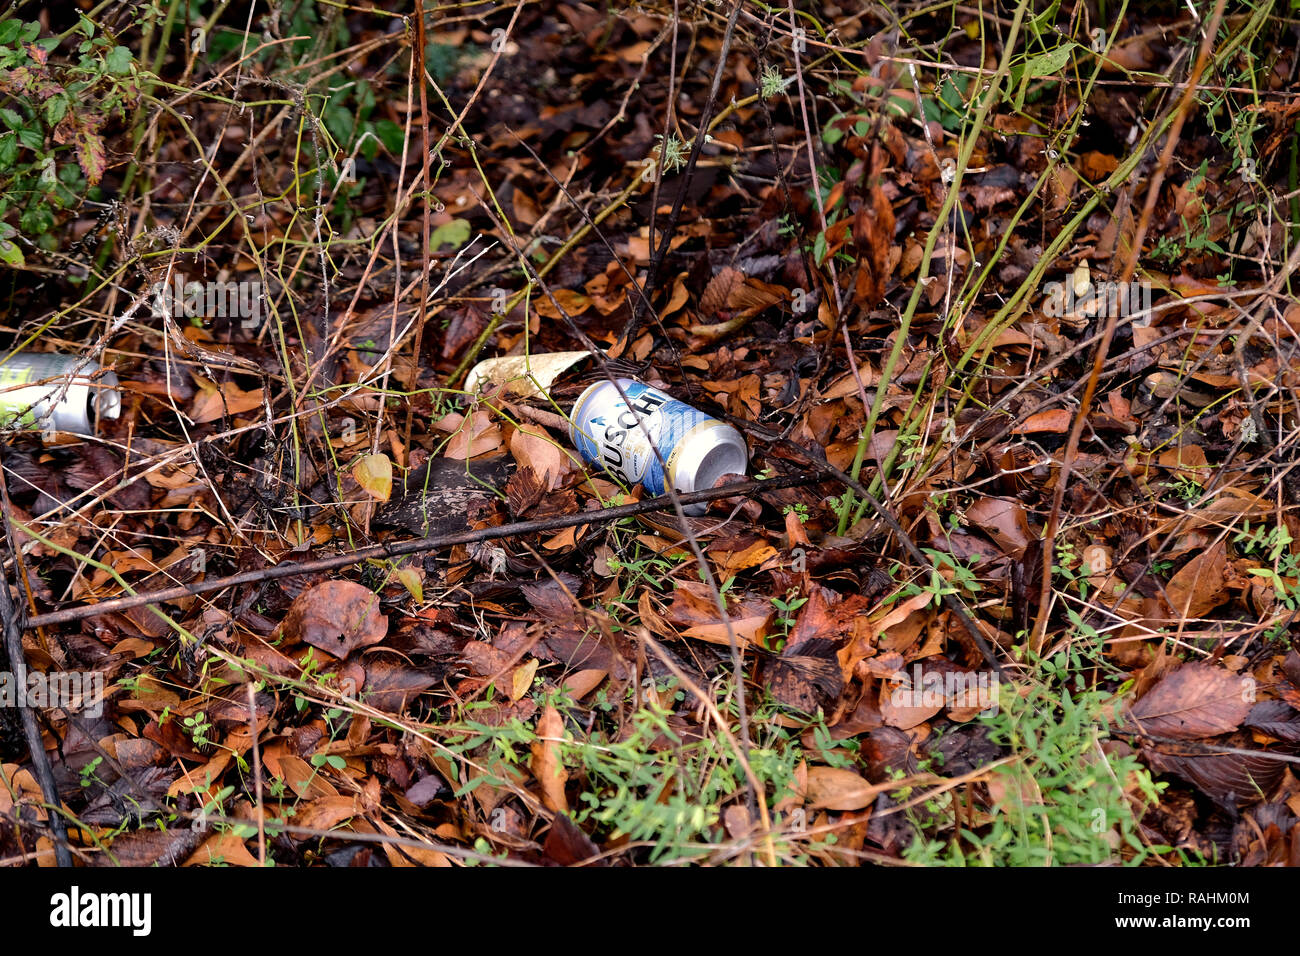 Empty beer cans thrown on the ground amid leaves in nature; aluminum pollution; trash in nature. - Stock Image